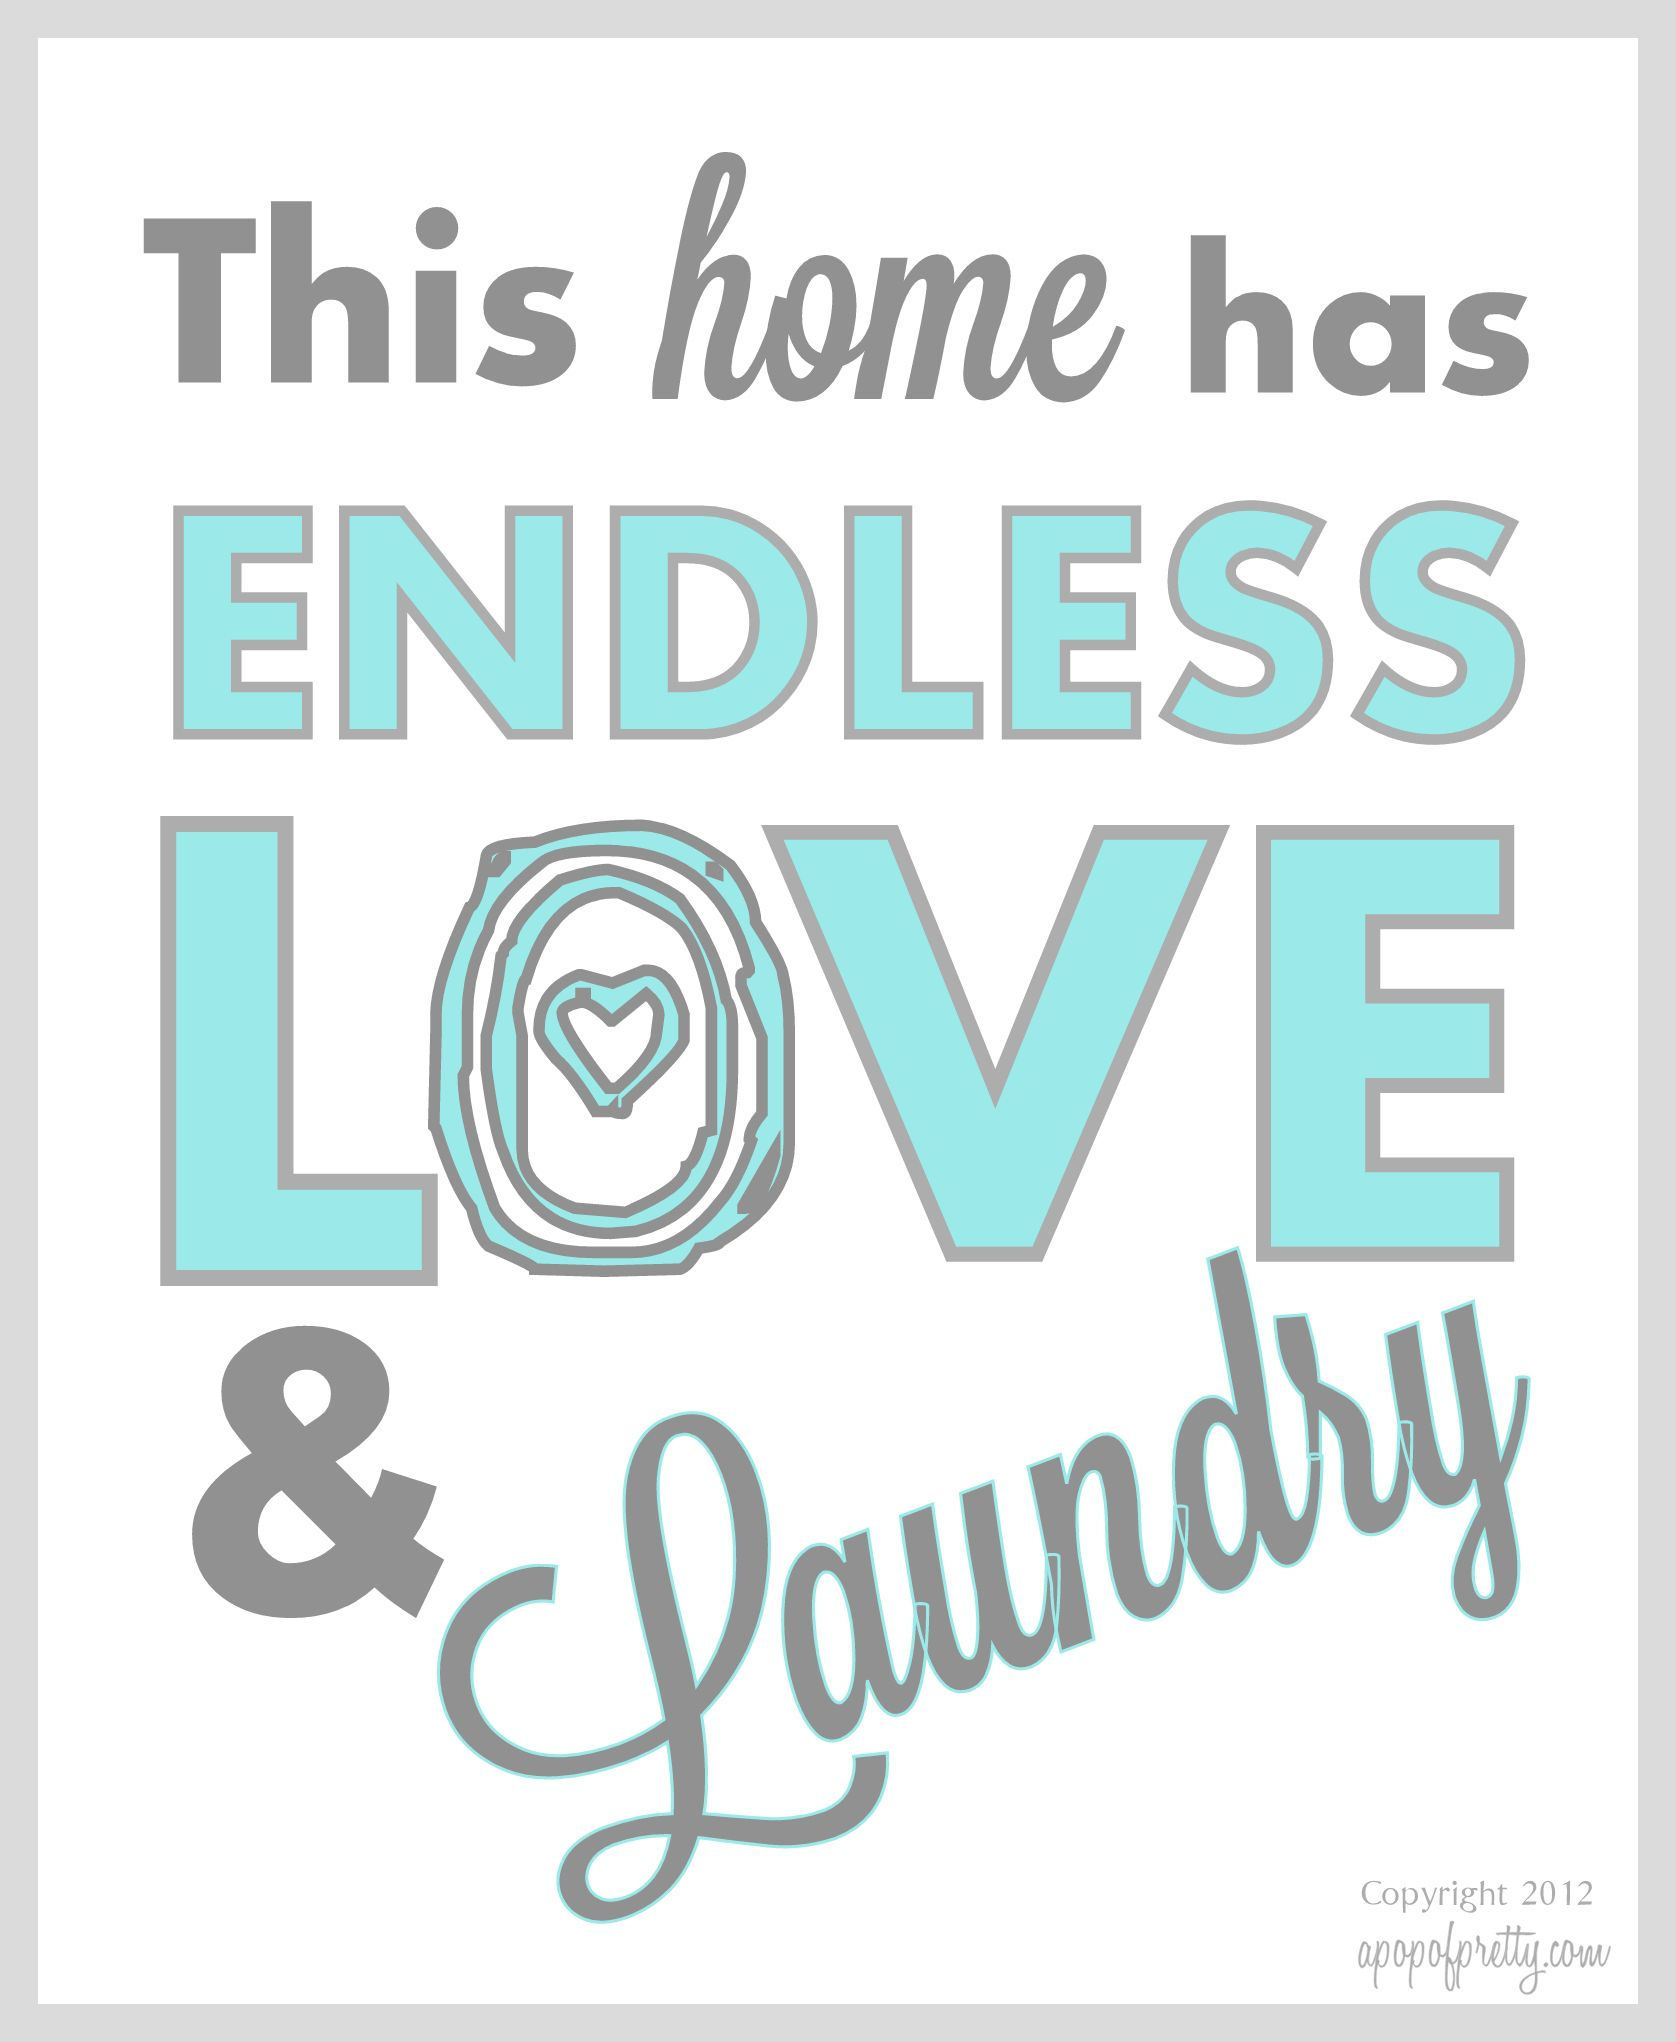 photograph relating to Free Printable Laundry Room Signs called Laundry SOS, Free of charge Printable Rates Printables